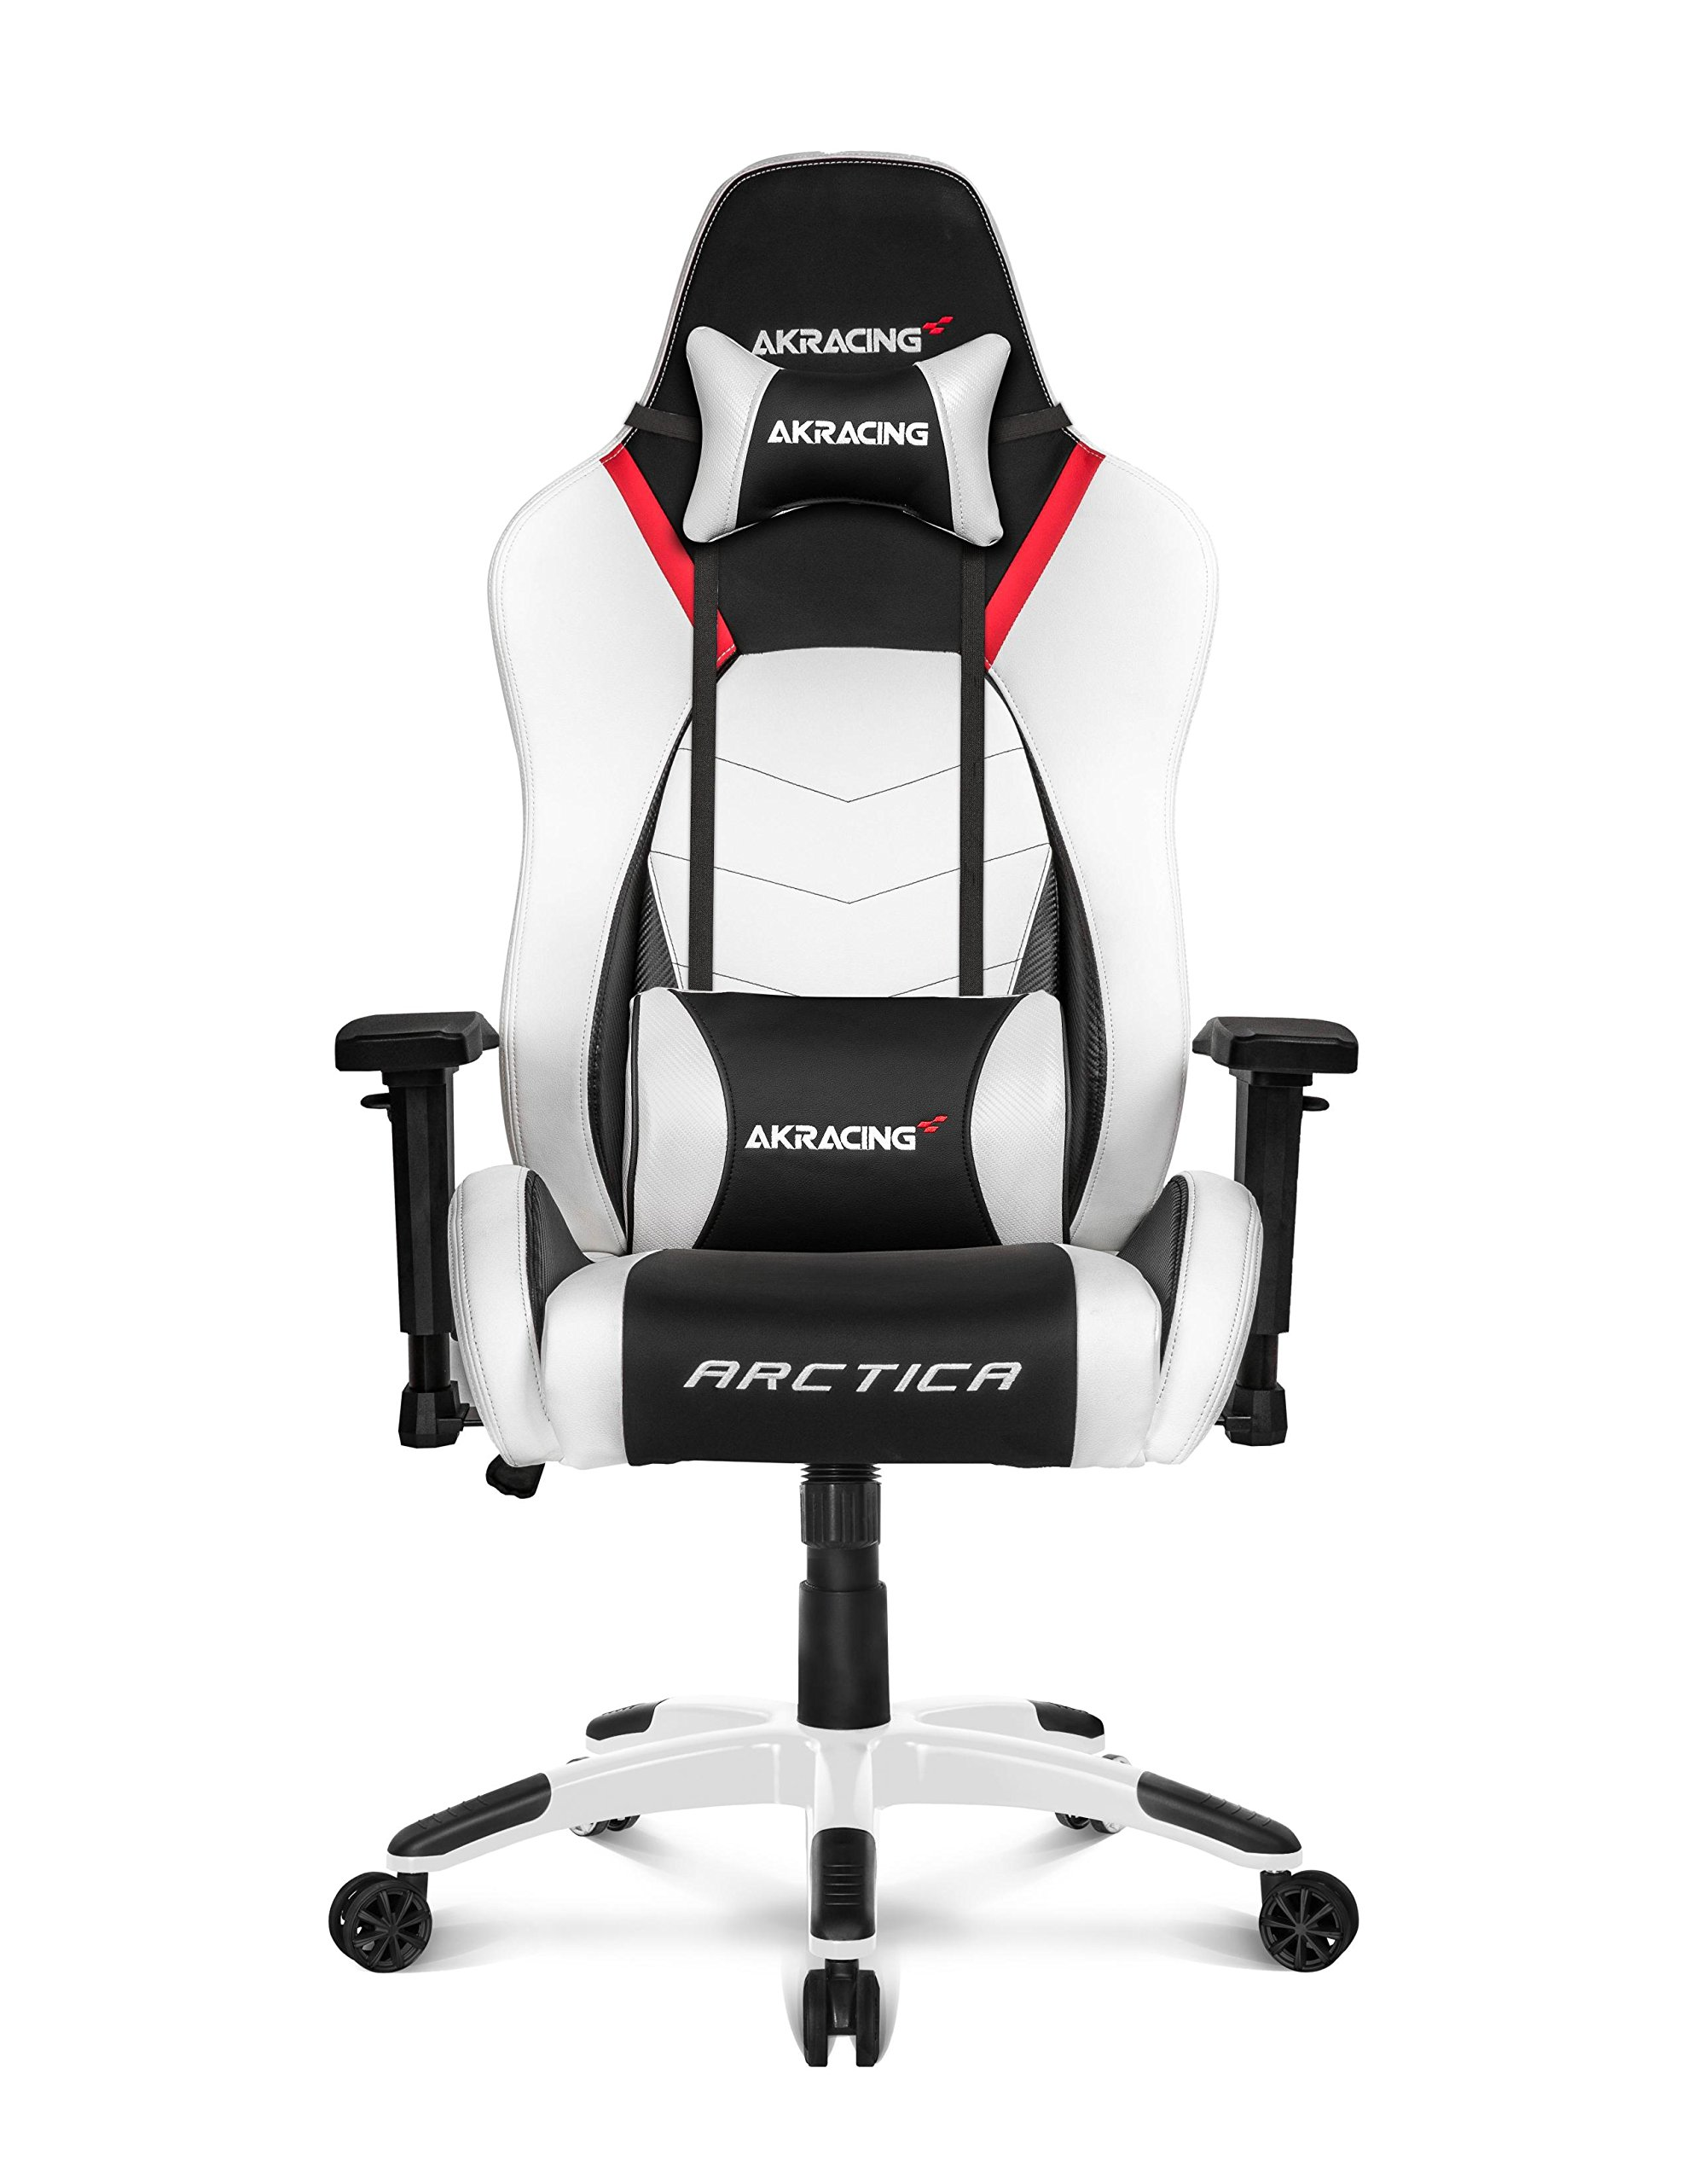 AKRacing Arctica Ultra-Premium White Concept Gaming Chair with High Backrest, Recliner, Swivel, Tilt, Rocker and Seat Height Adjustment Mechanisms with 5/10 warranty (White)